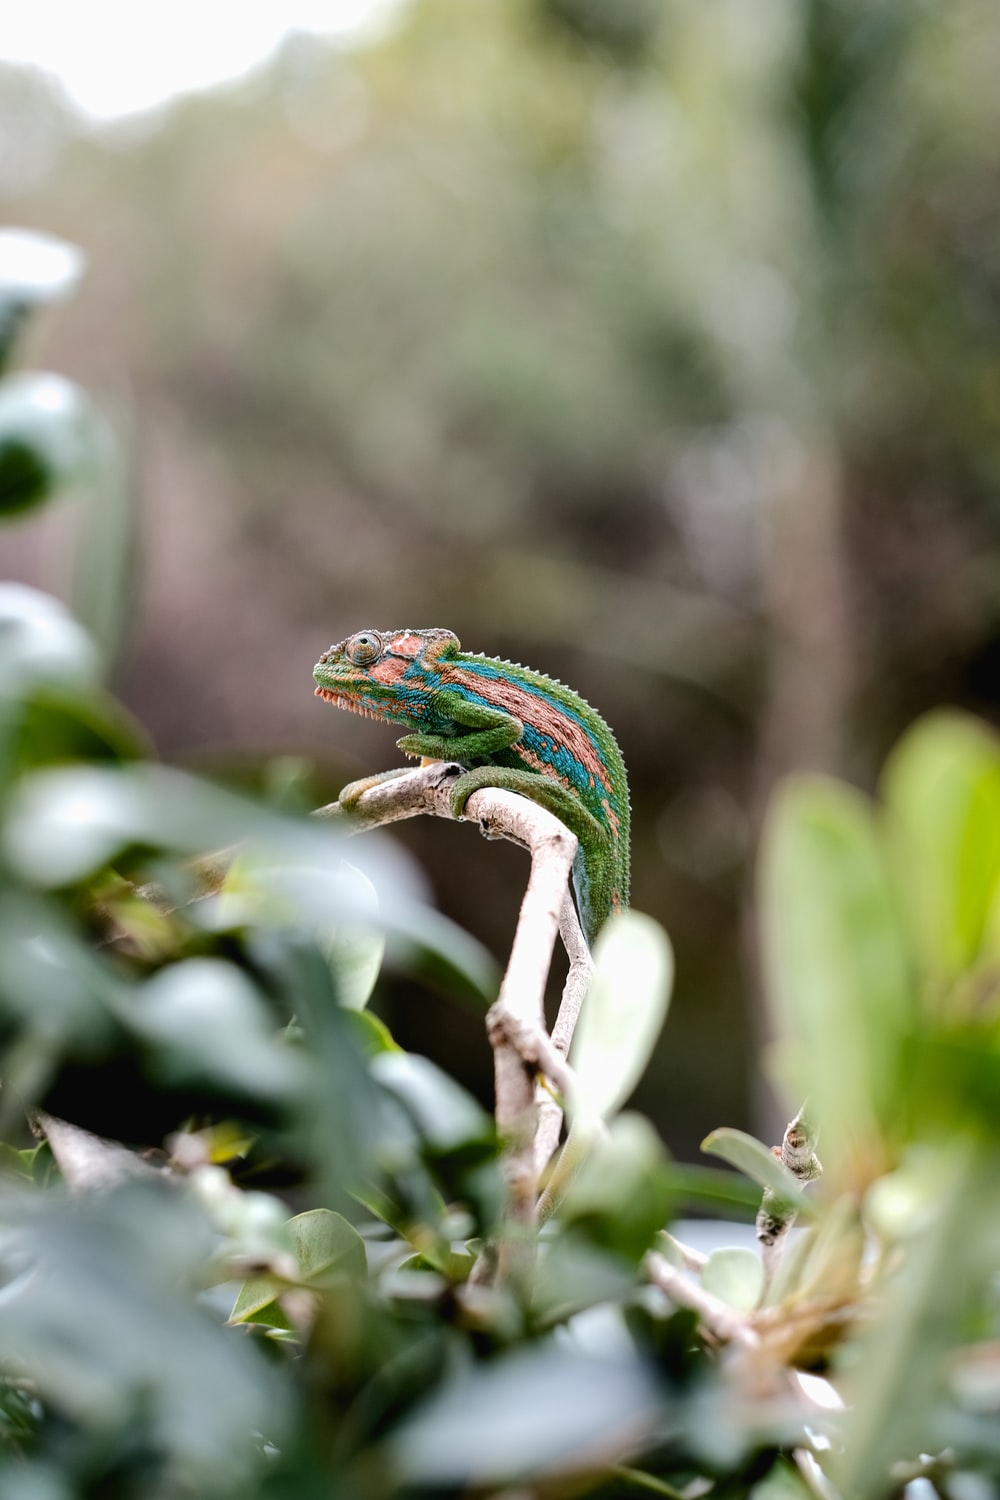 green and brown lizard on tree branch